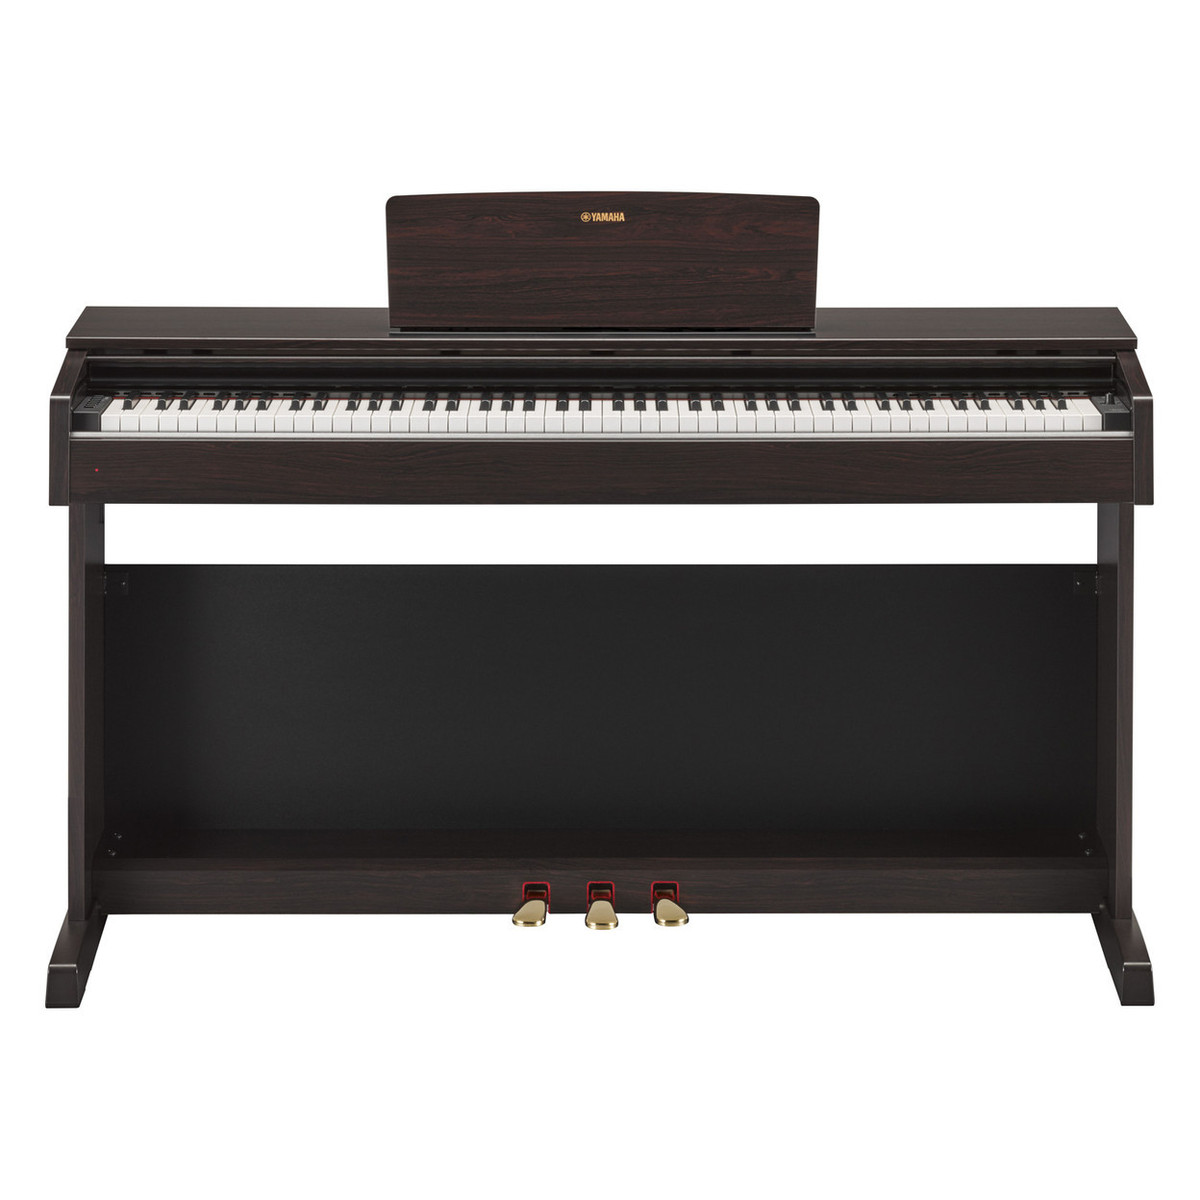 yamaha ydp 143 digital piano package rosewood at gear4music. Black Bedroom Furniture Sets. Home Design Ideas